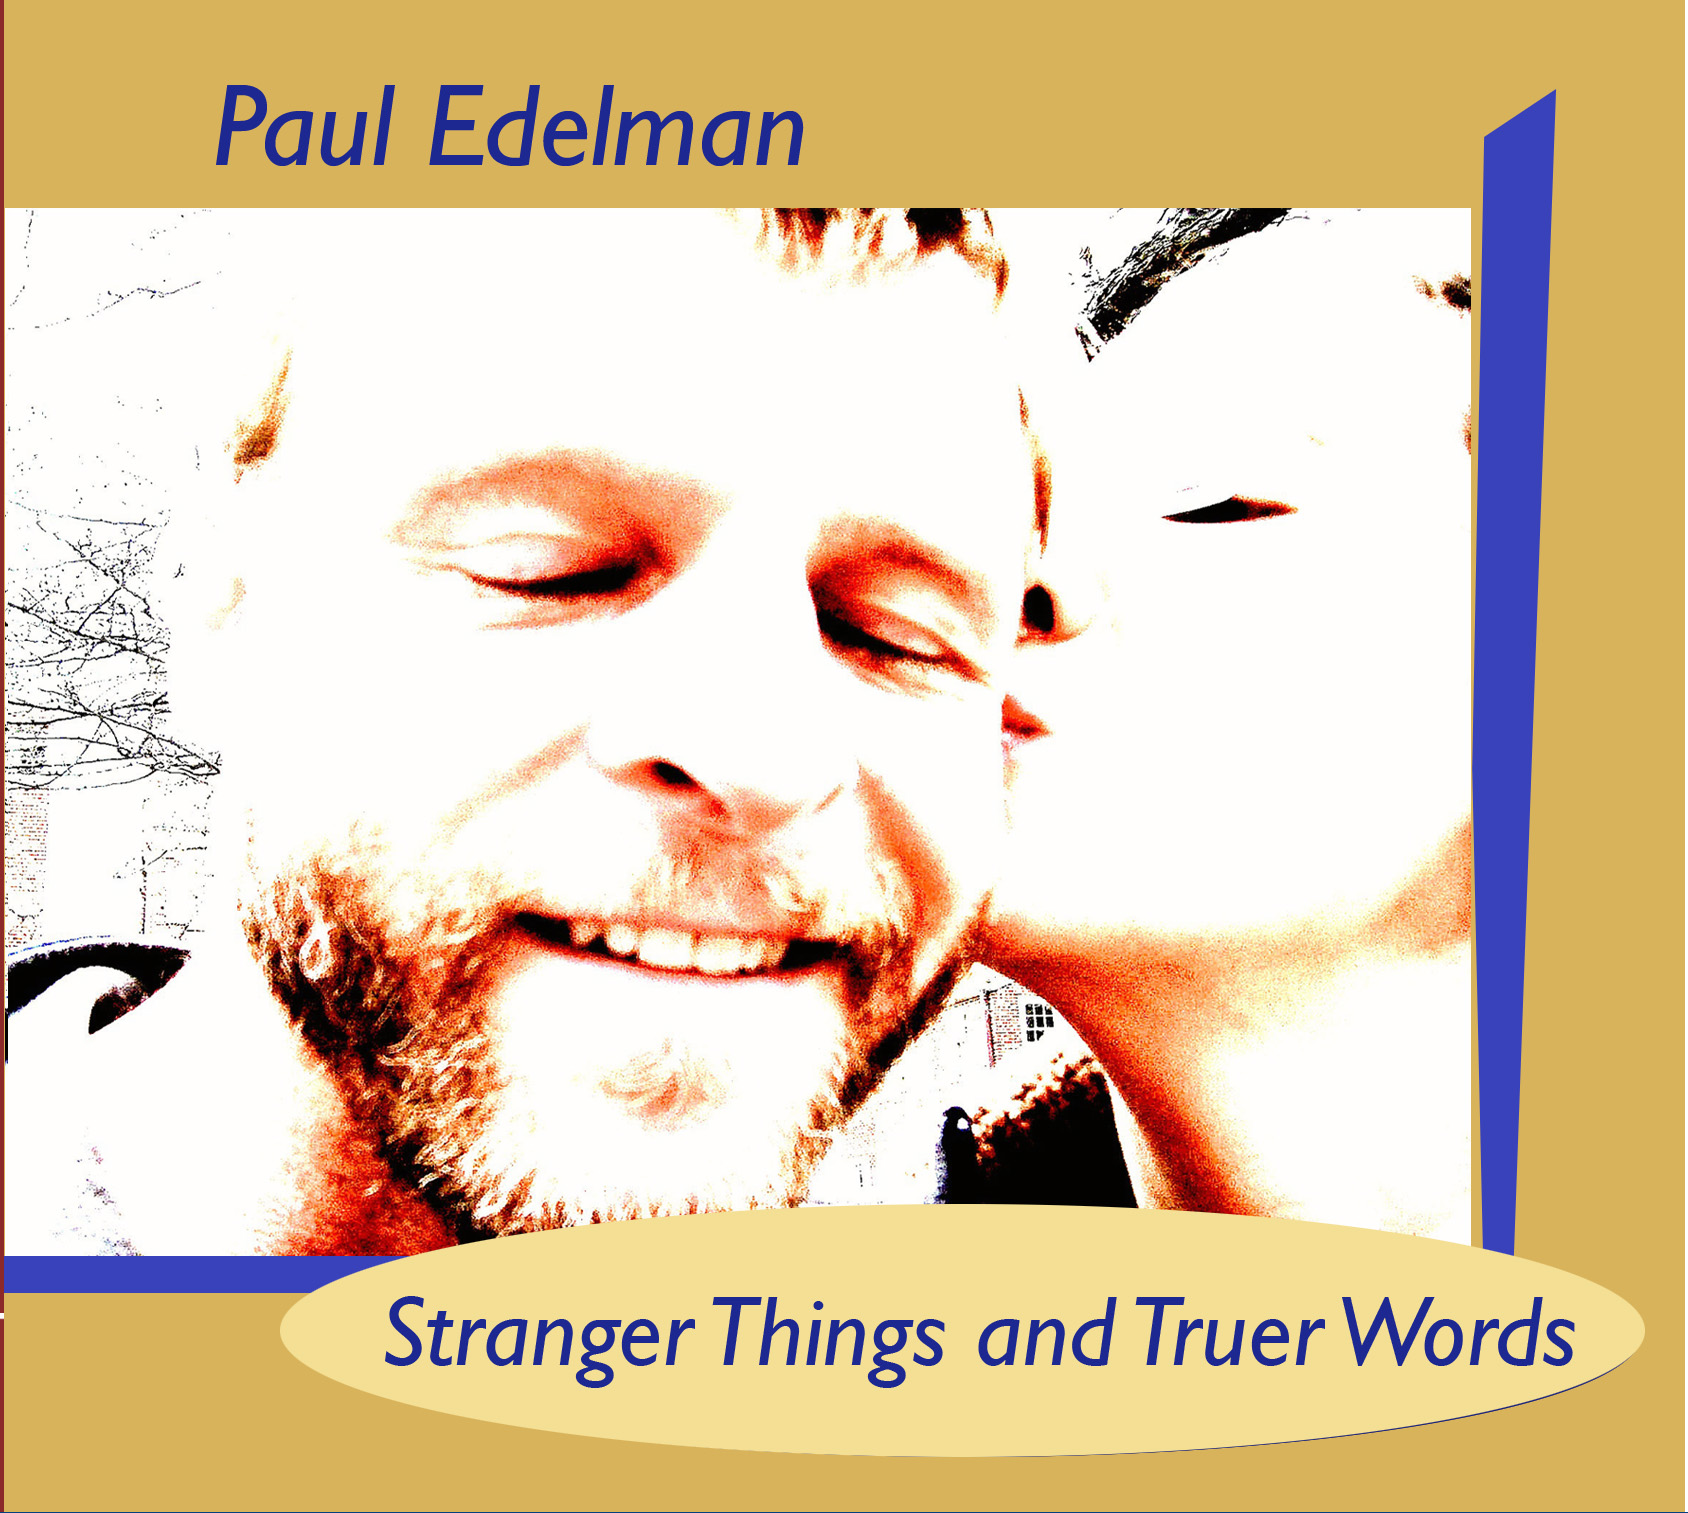 Paul Edelman | Stranger Things and Truer Words